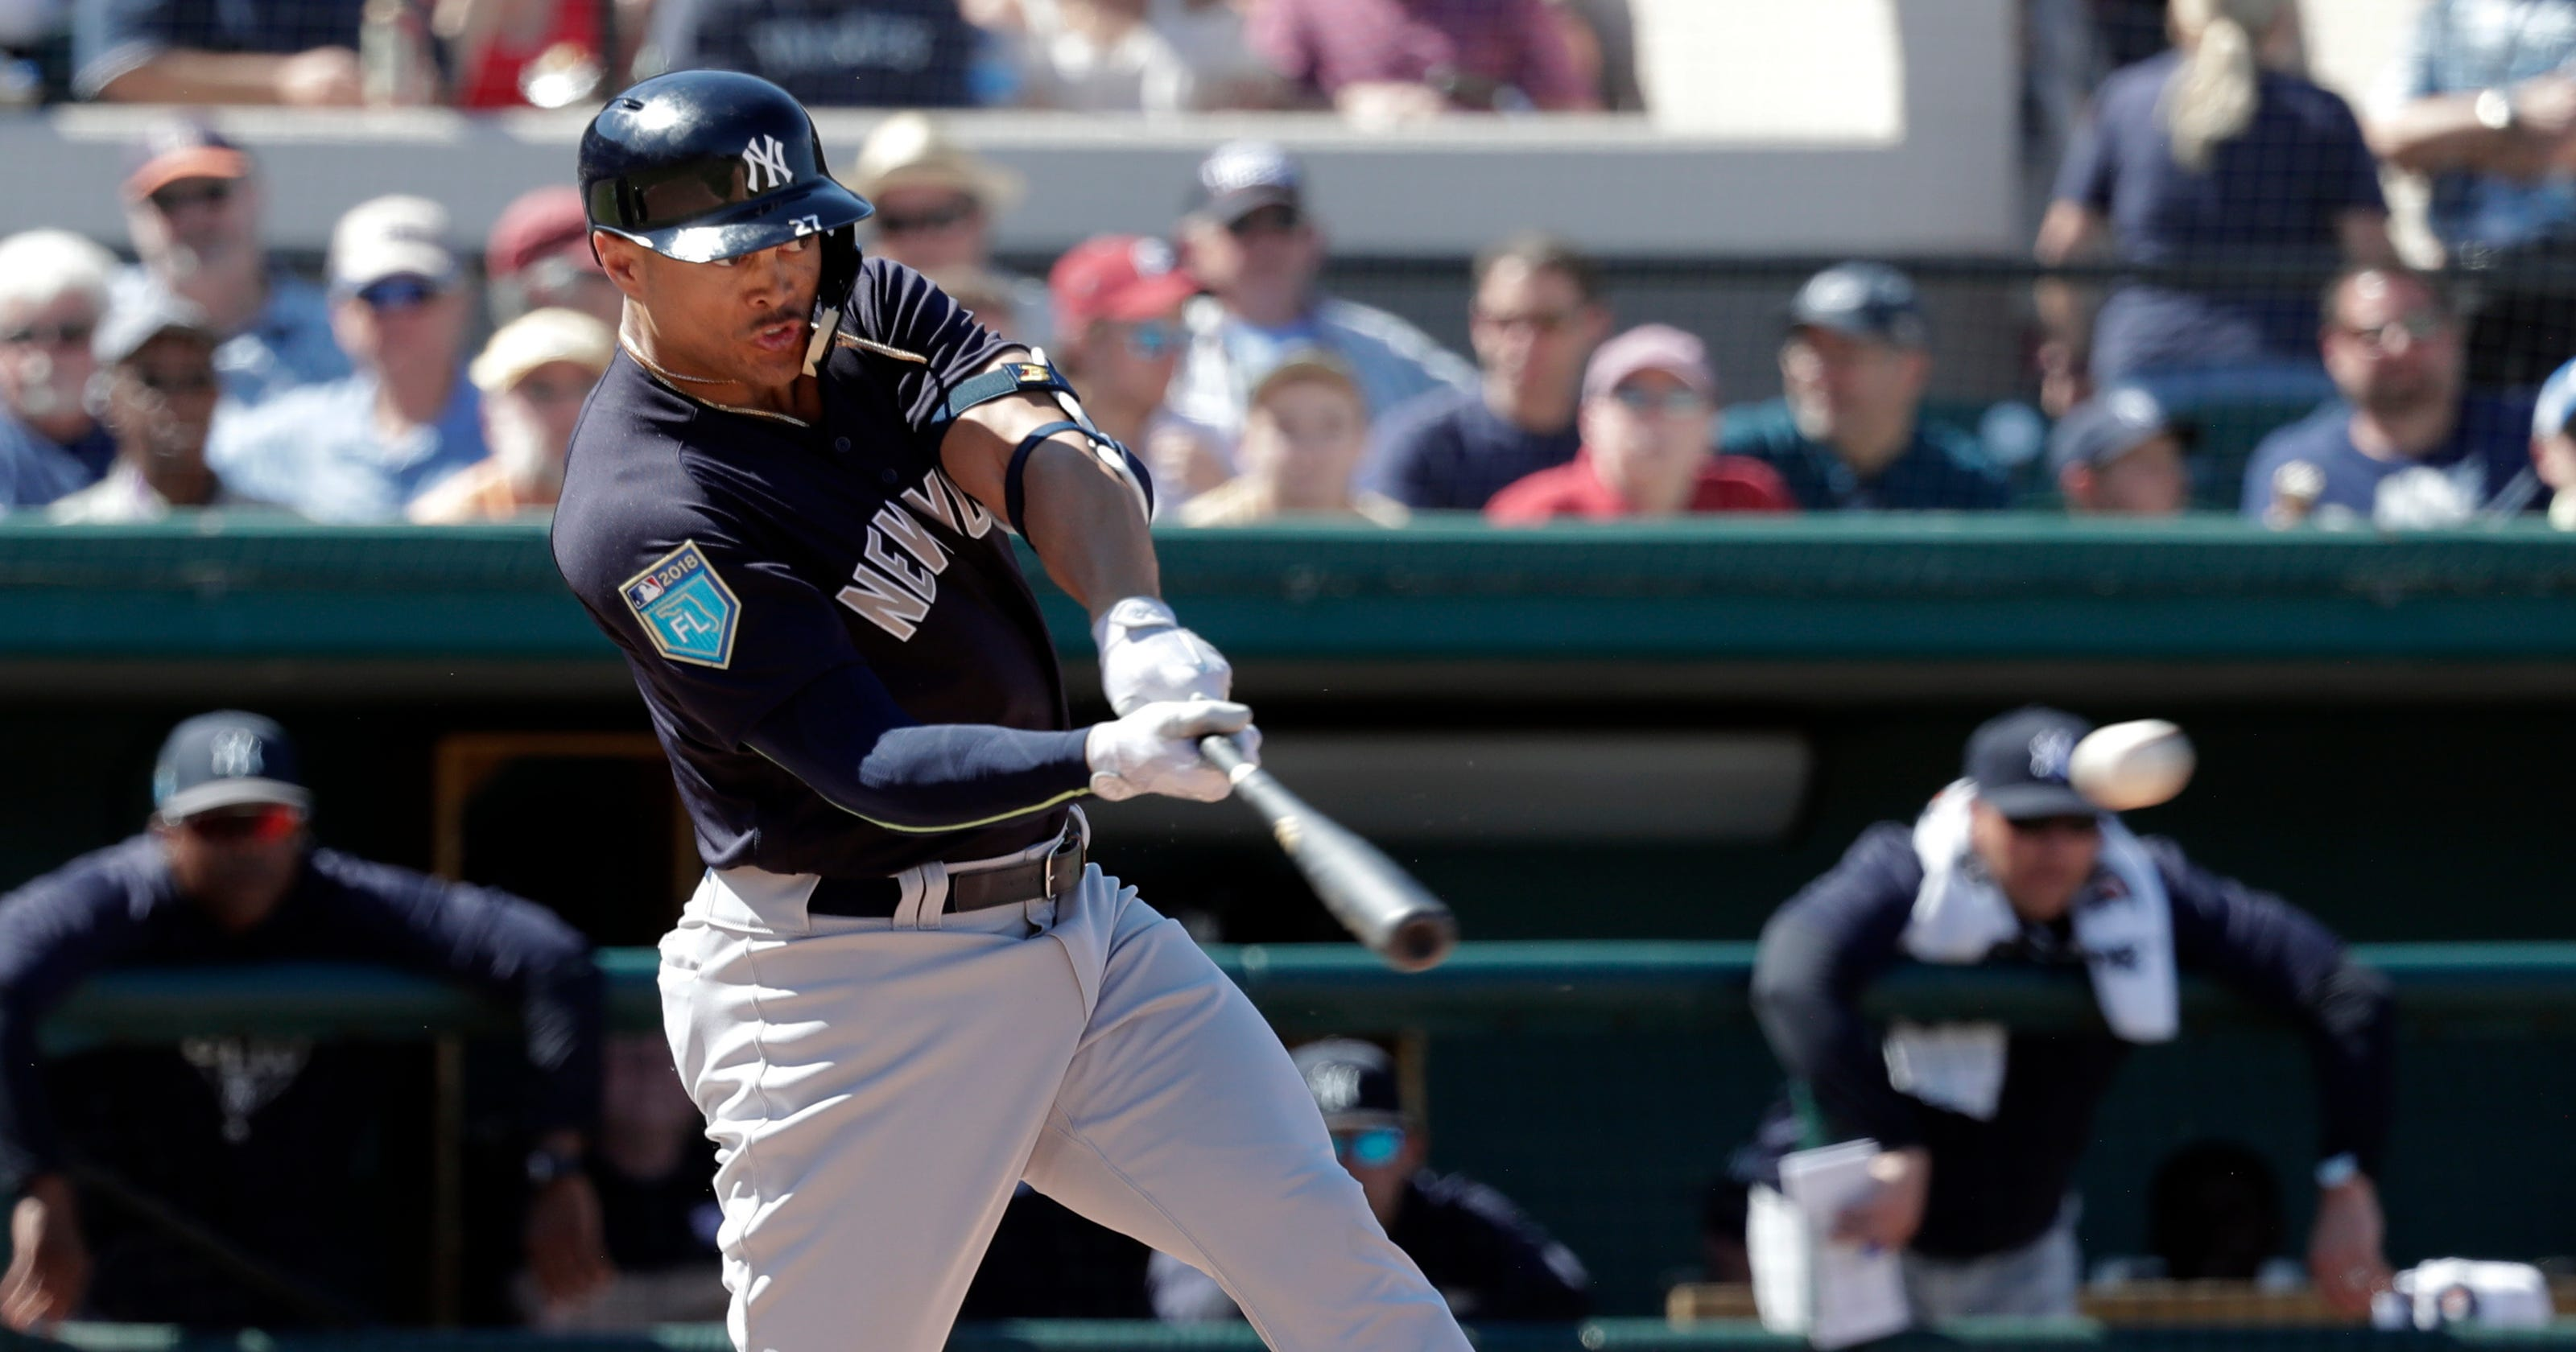 WATCH  Giancarlo Stanton smacks first HR at Yankees spring training c2a8737ea59